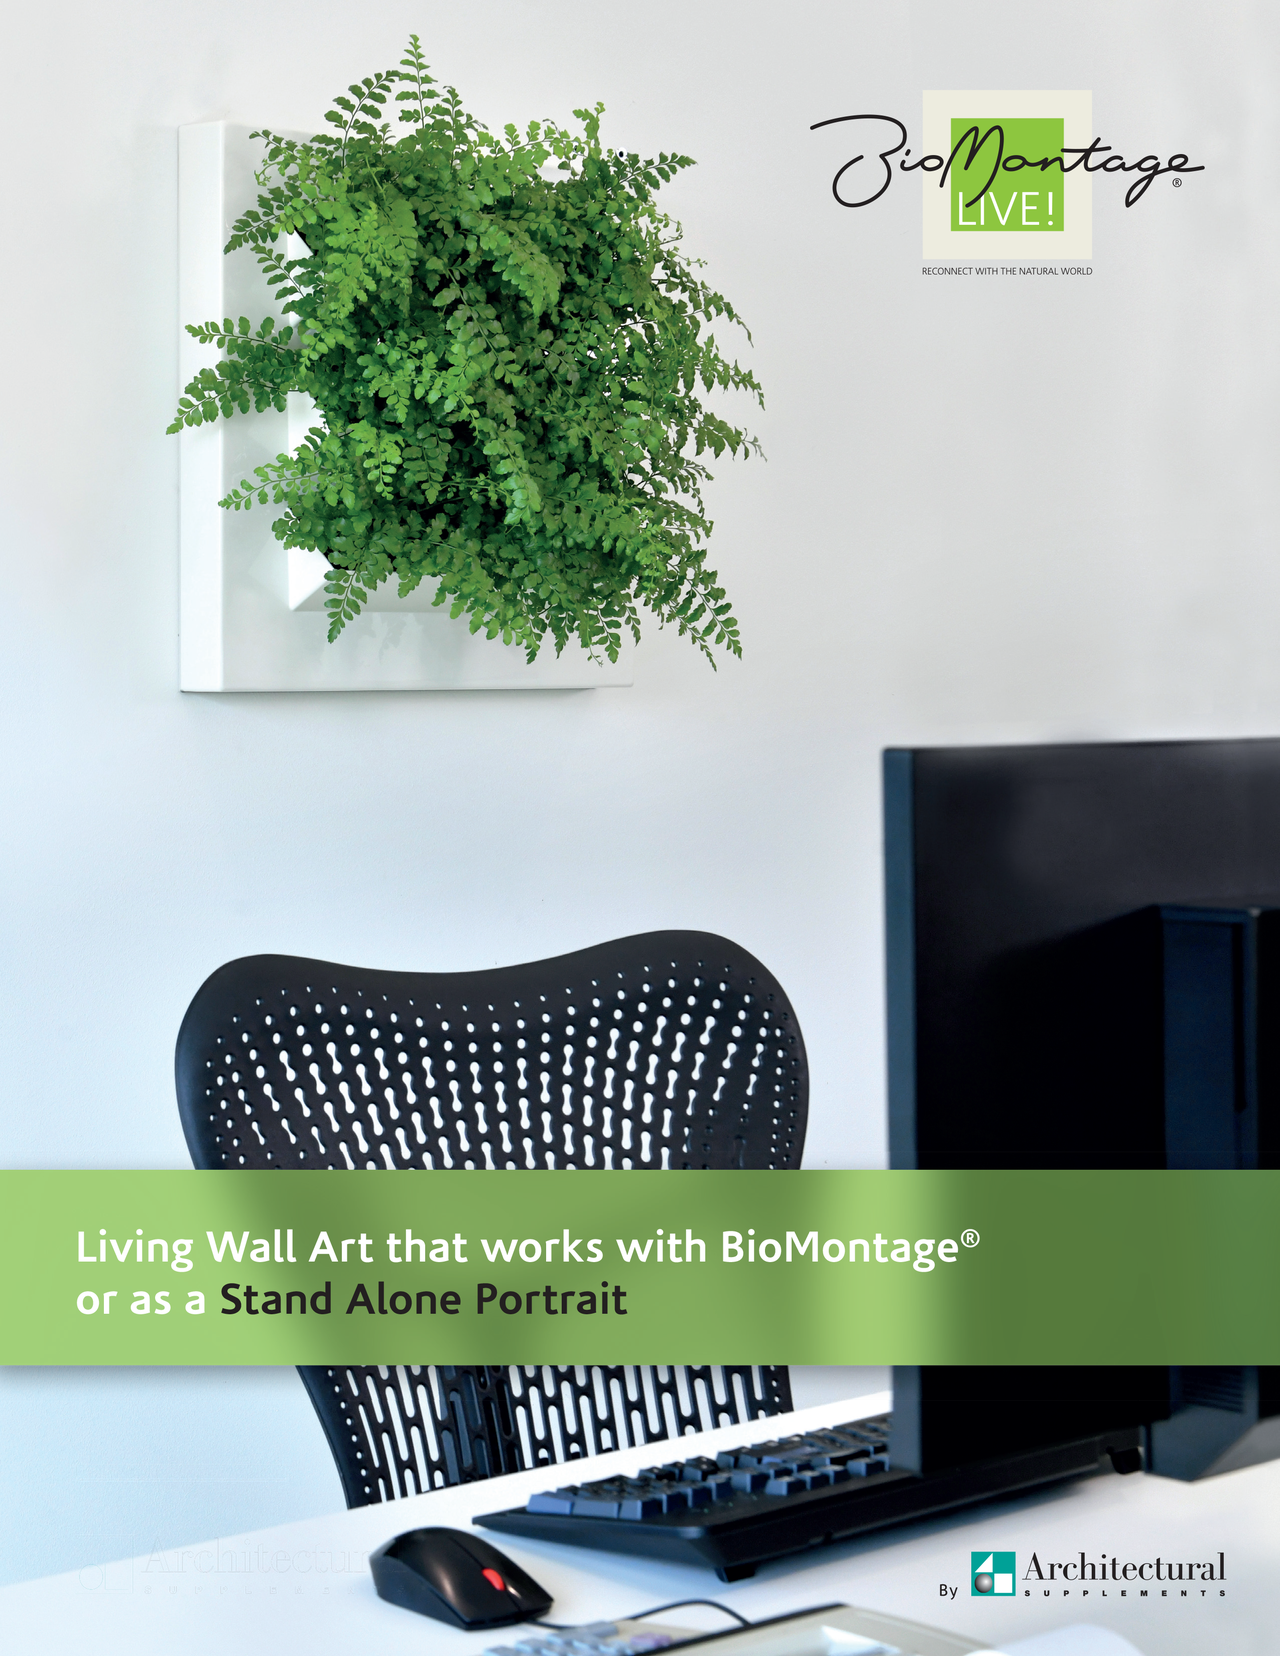 biomontage_live!_brochure-cover.png